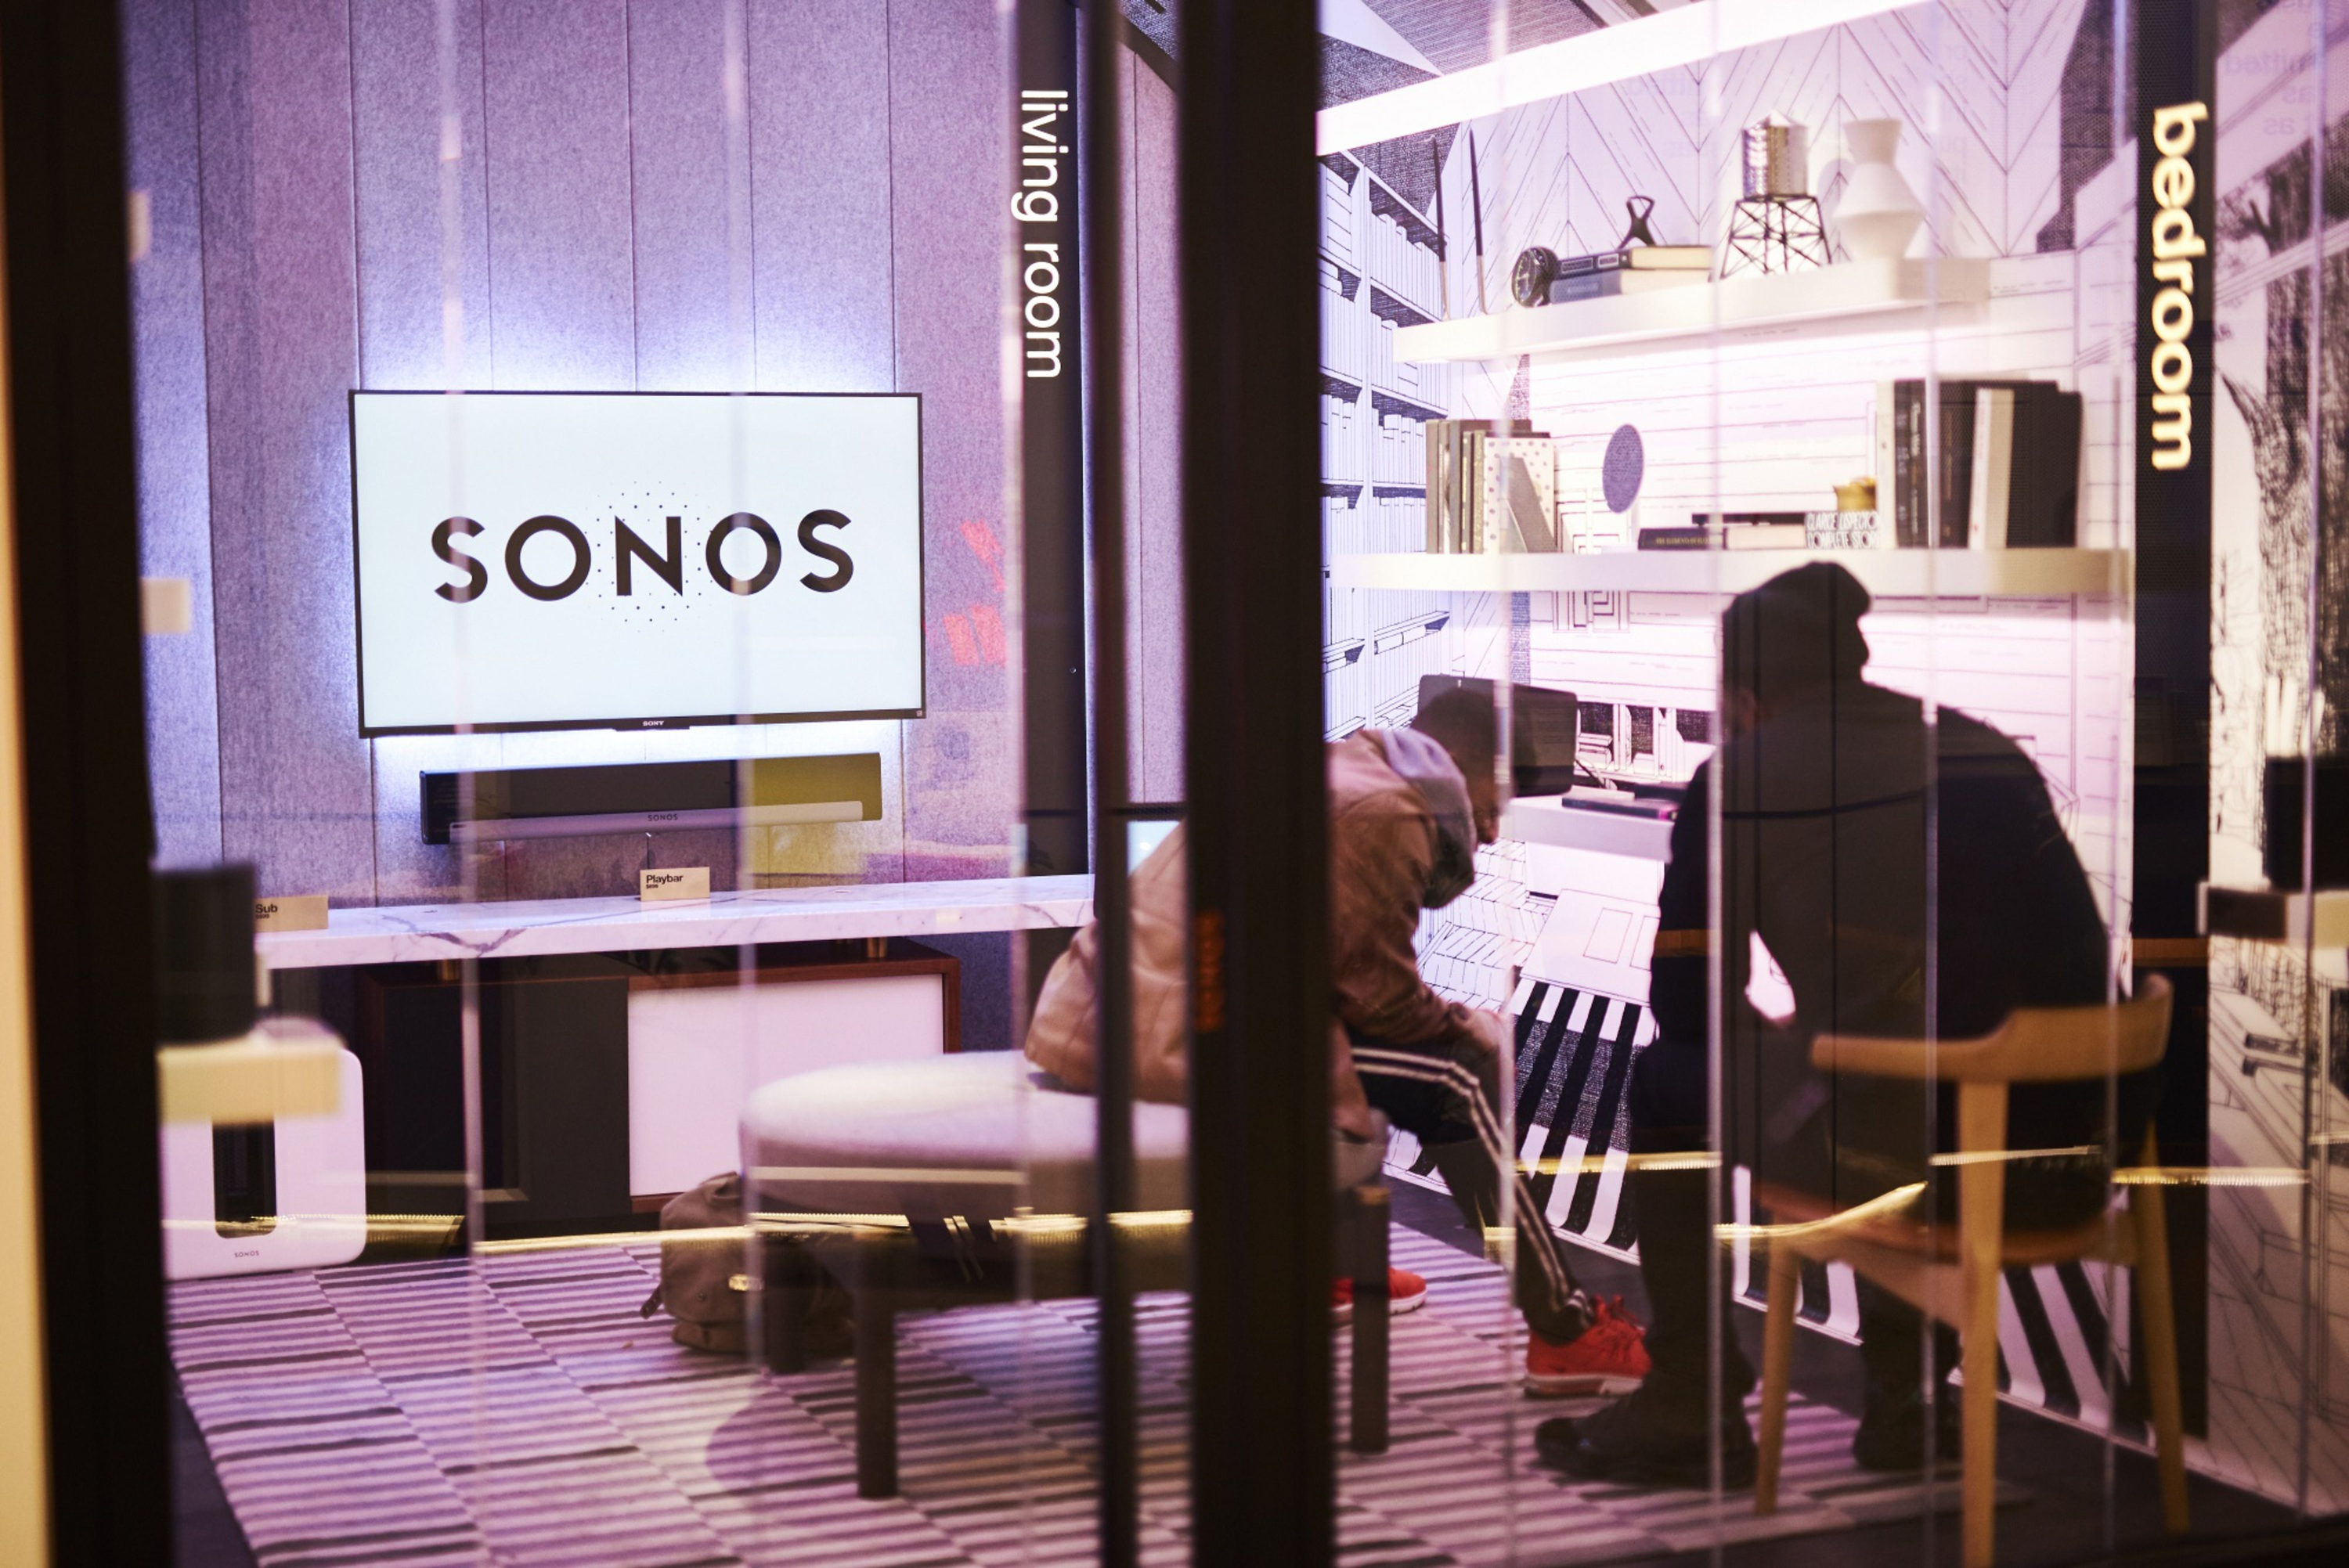 Sonos taps VCCP and Muh-Tay-Zik/ Hof-Fer to lead creative and strategy